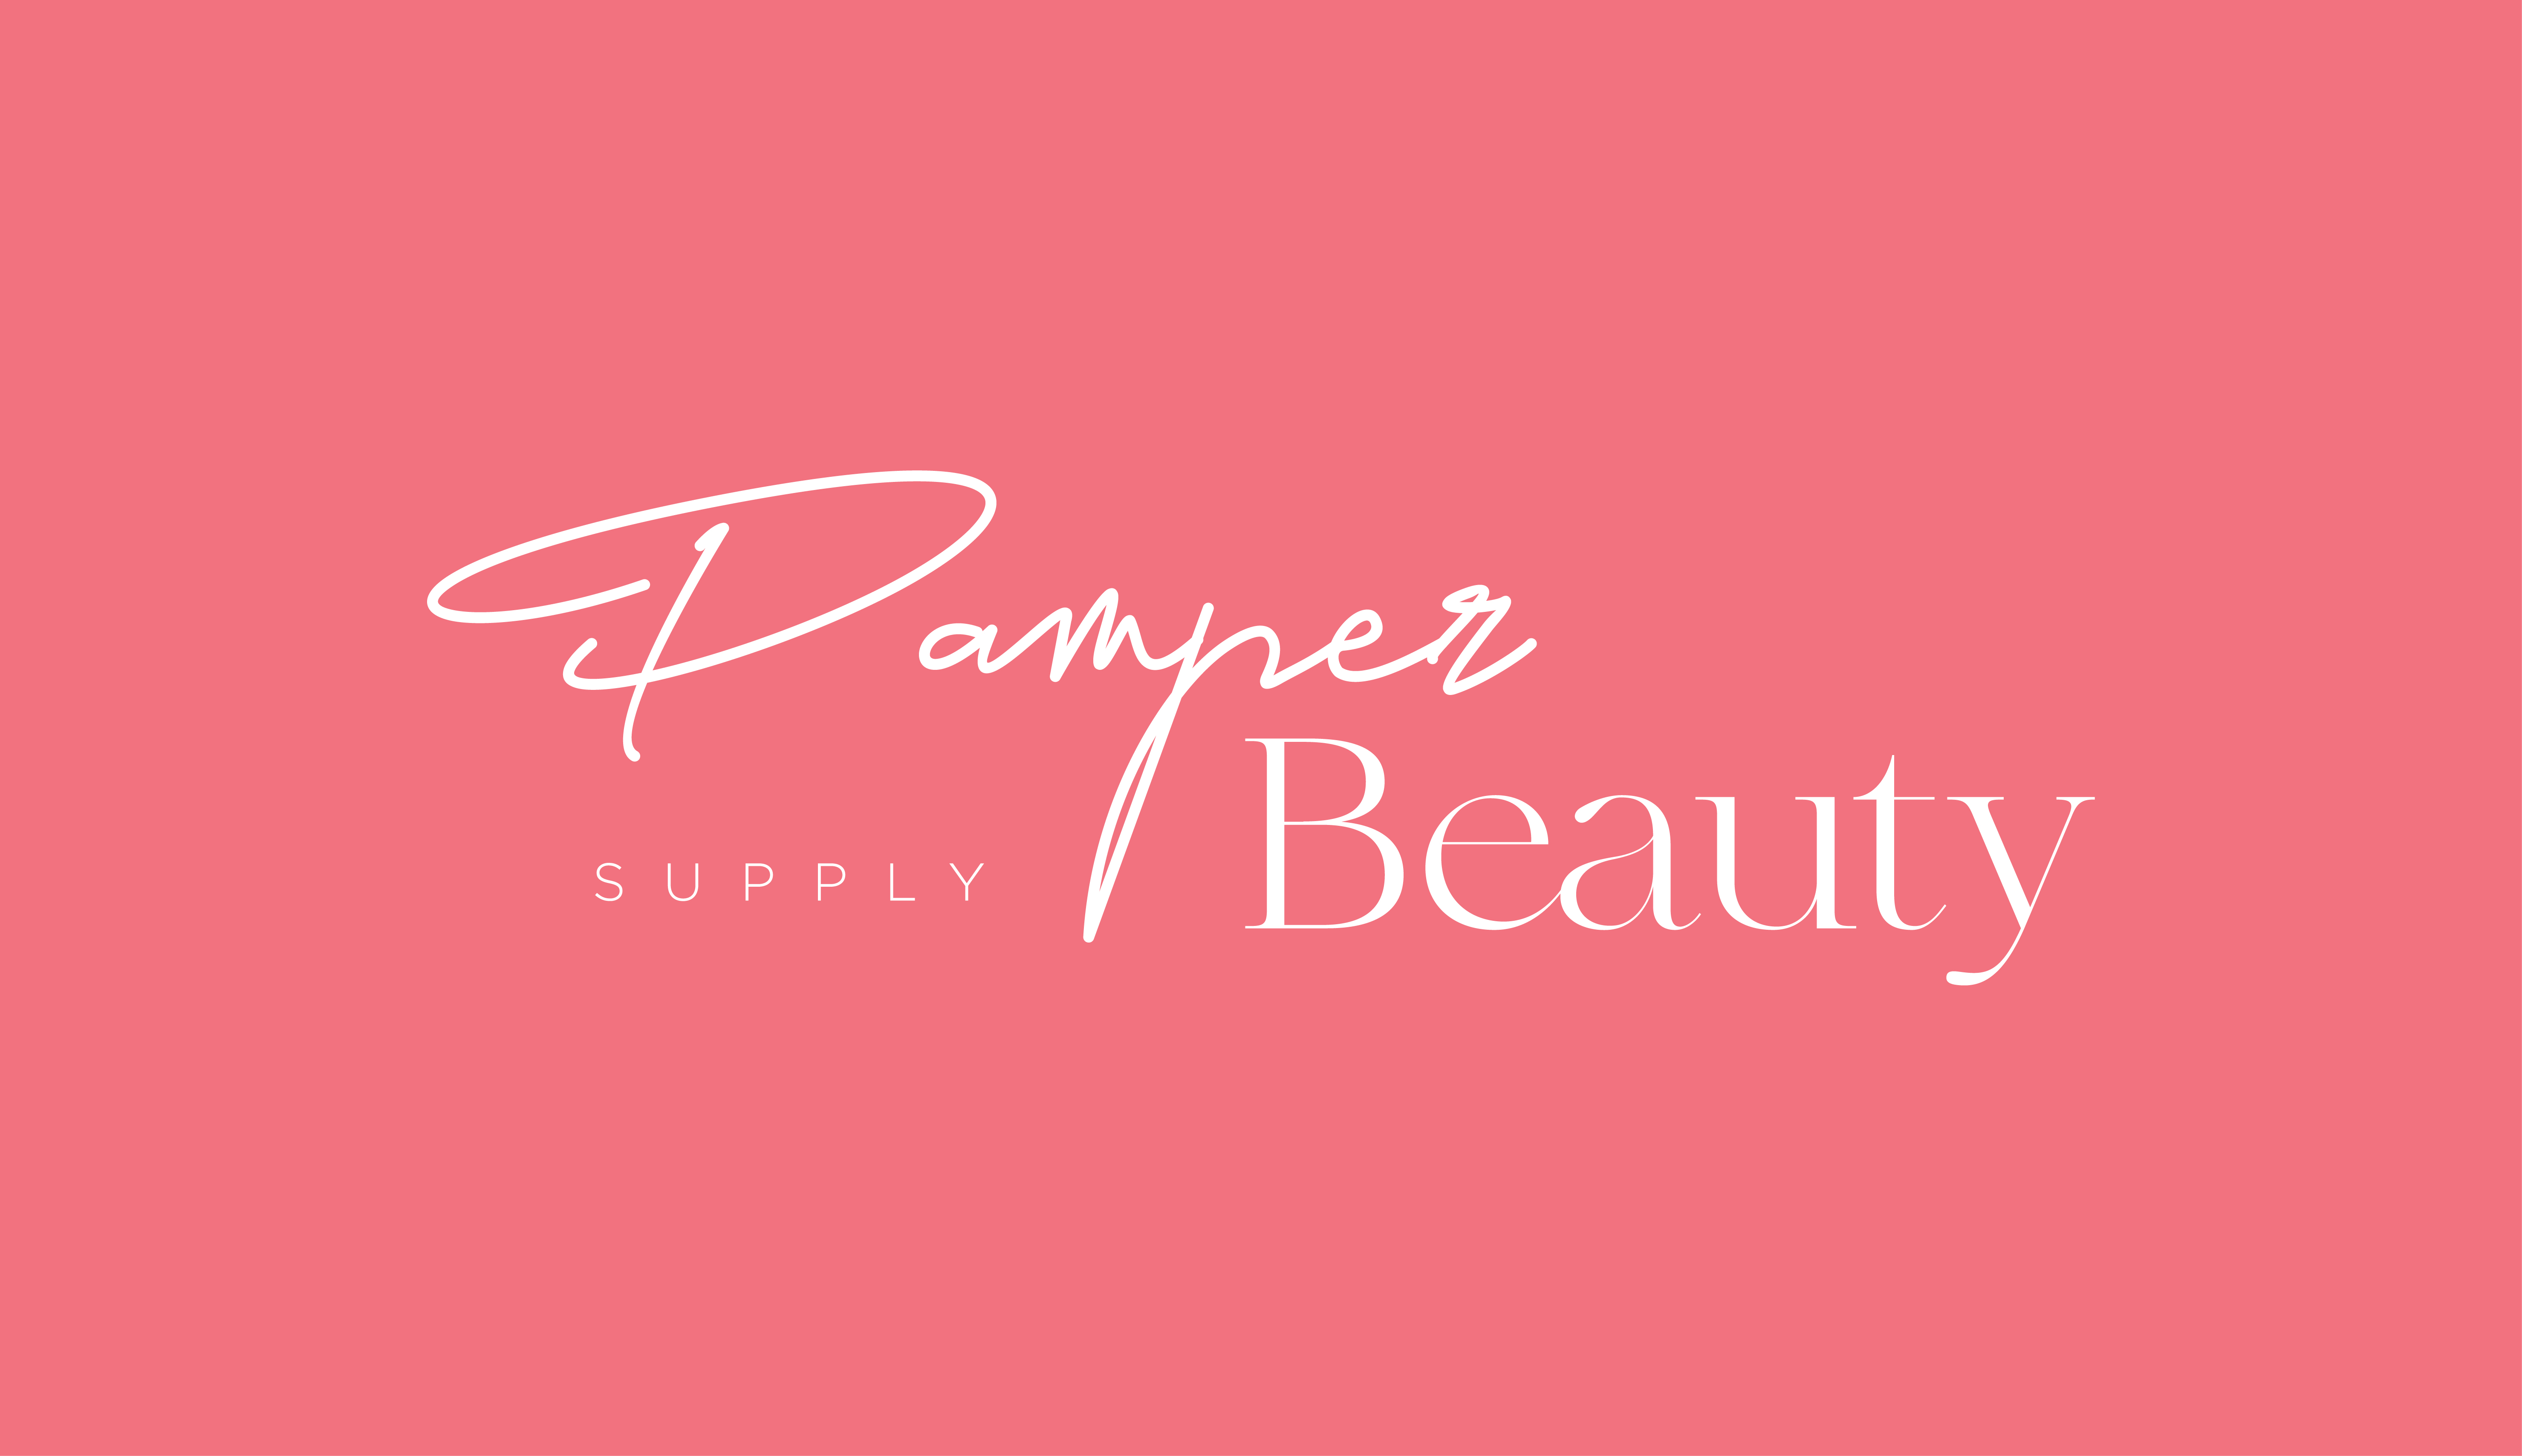 Pamper Beauty Supply All Set To Open Officially On October 6th